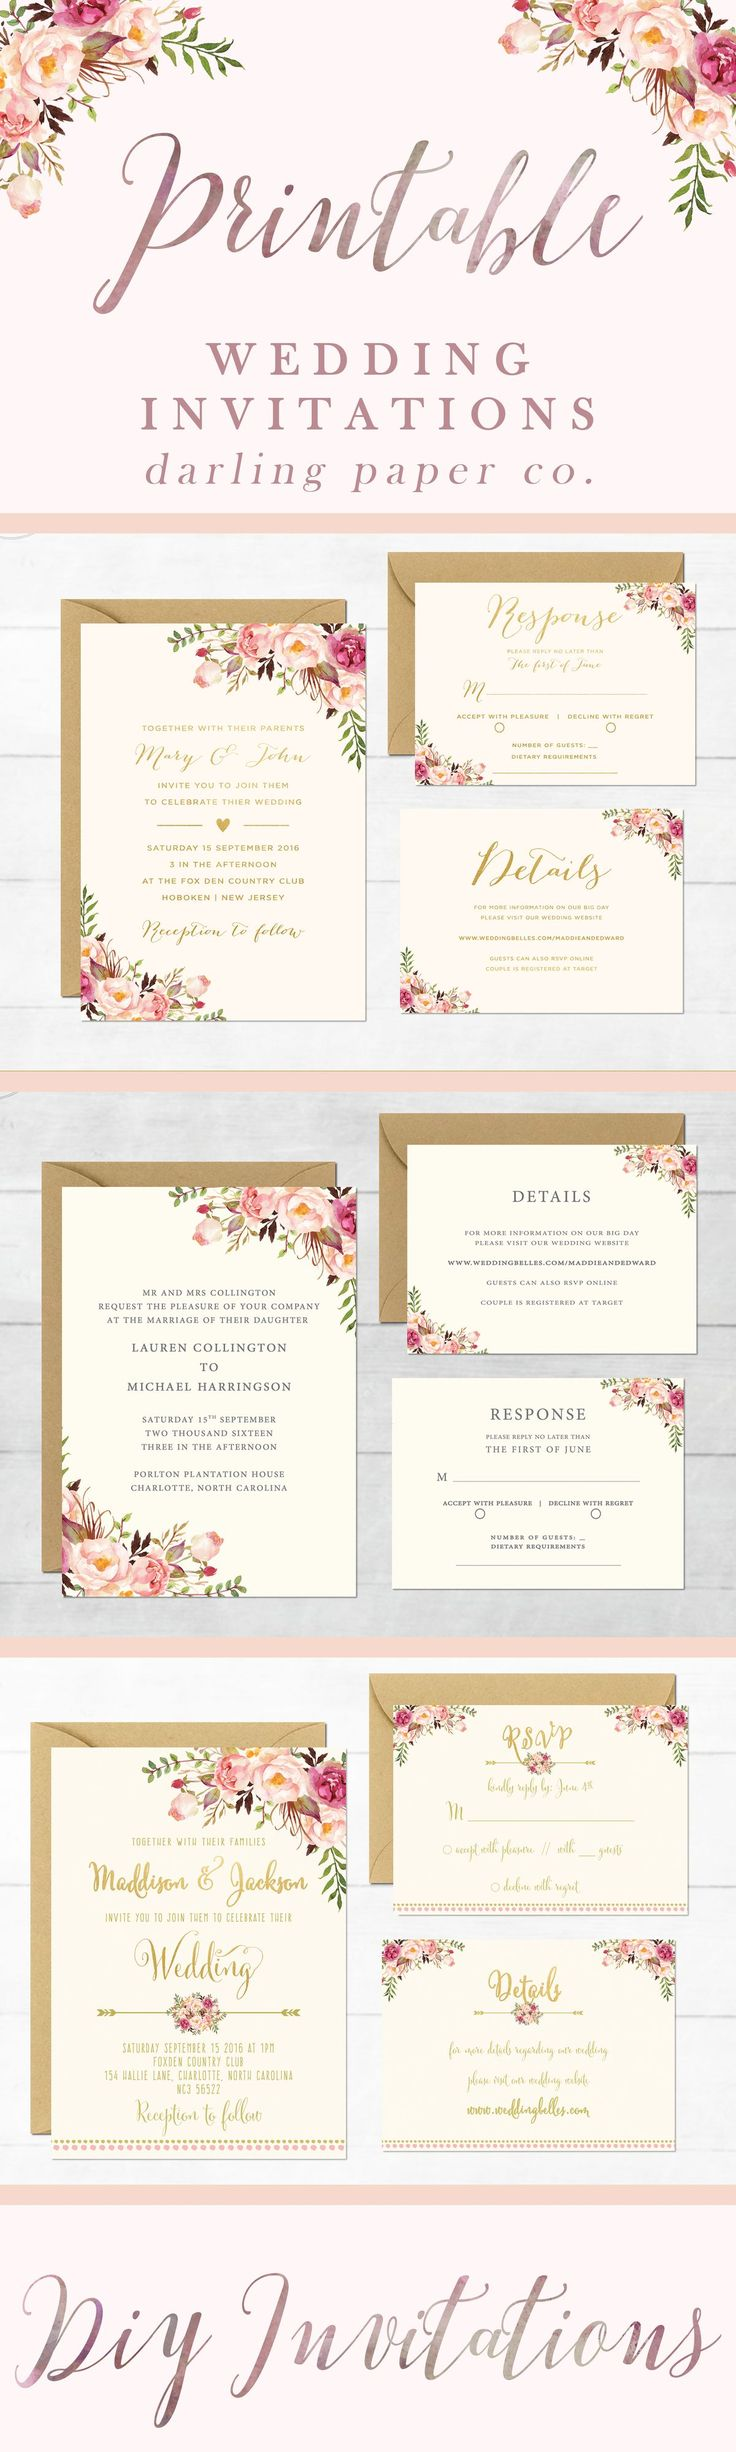 194 best wedding invitations images on Pinterest | Rustic diy ...